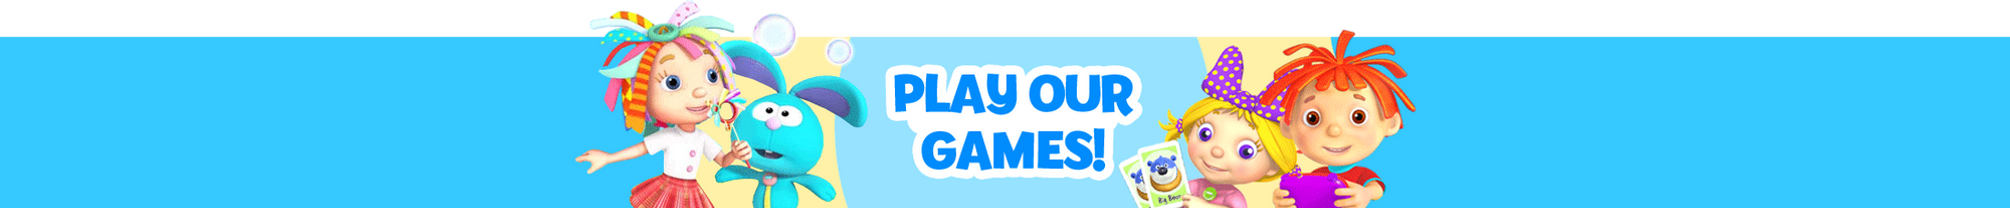 Play-Our-Games-Banner.png